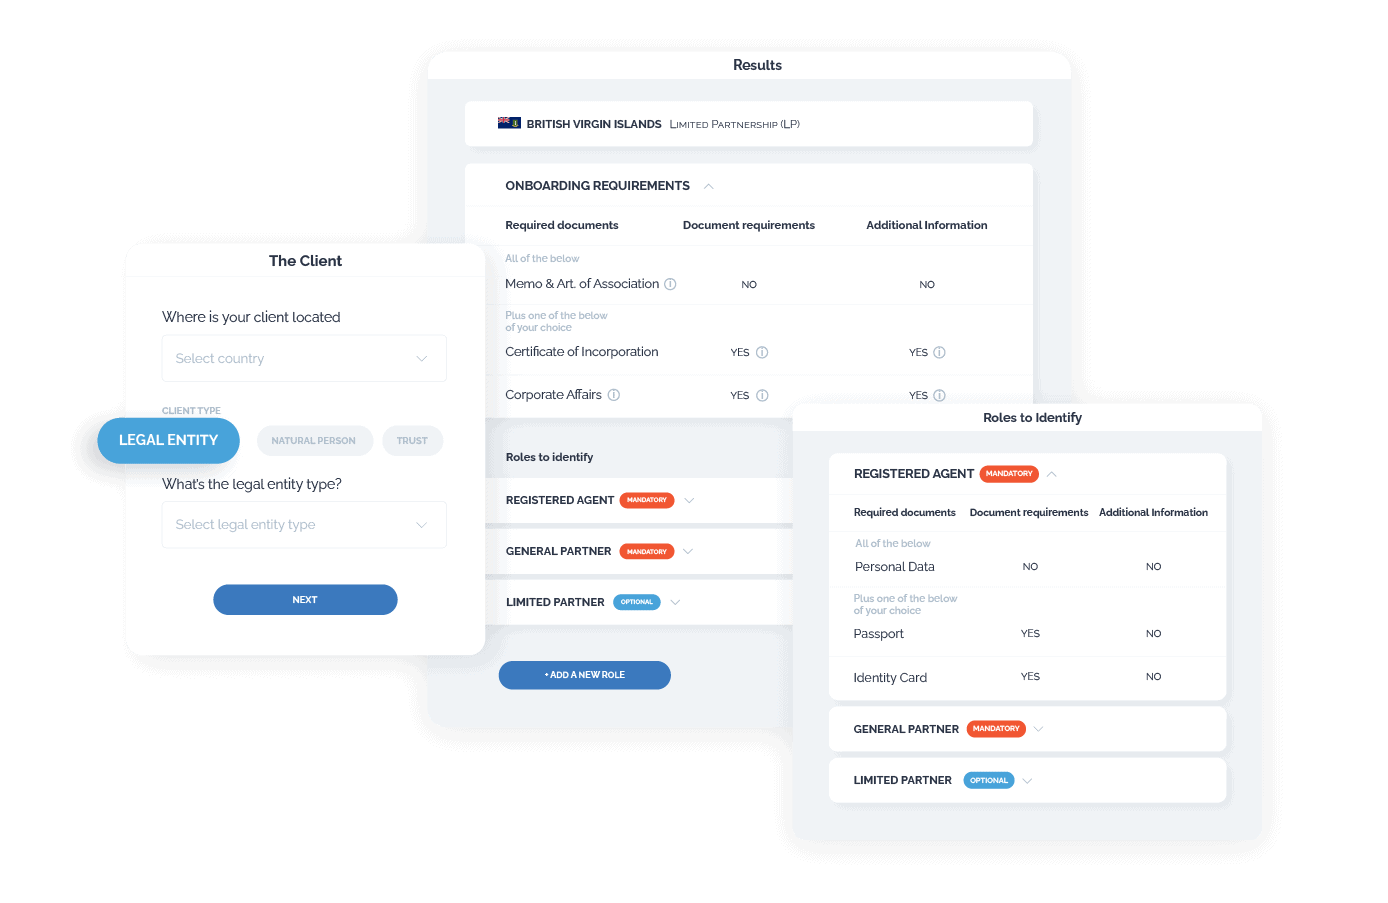 Image of the client onboarding app